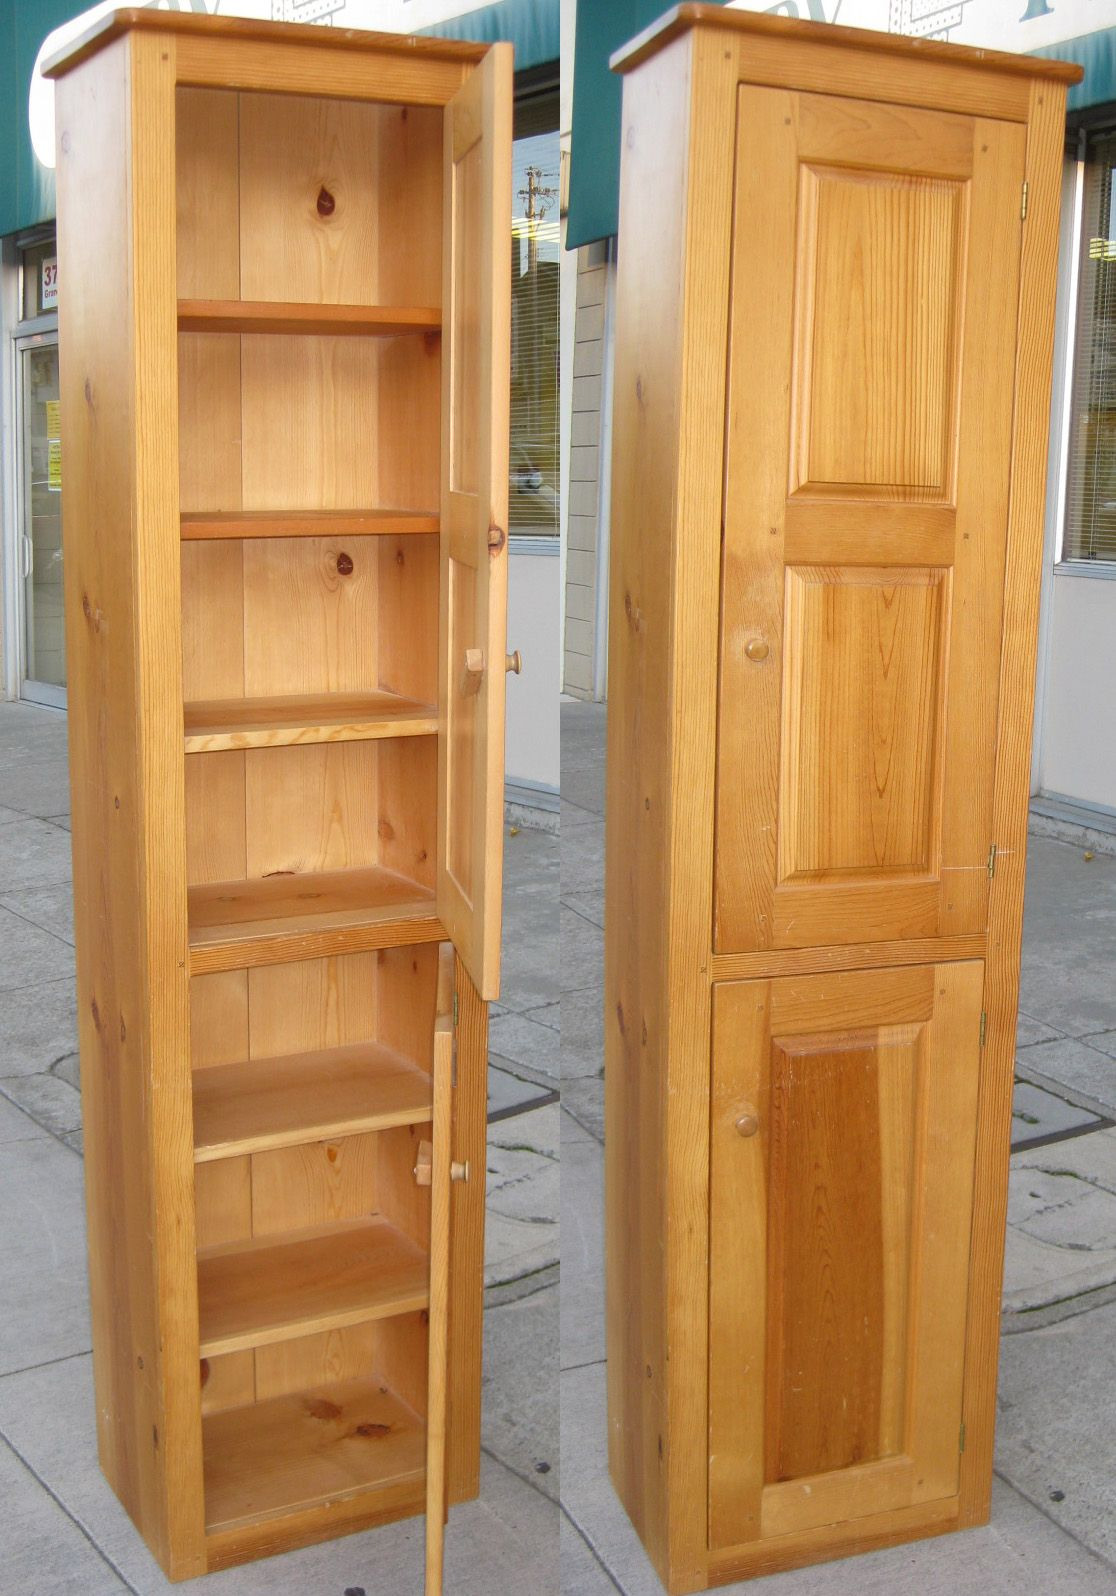 Narrow Cabinets with Doors Unique Tall Narrow Cabinet with Doors